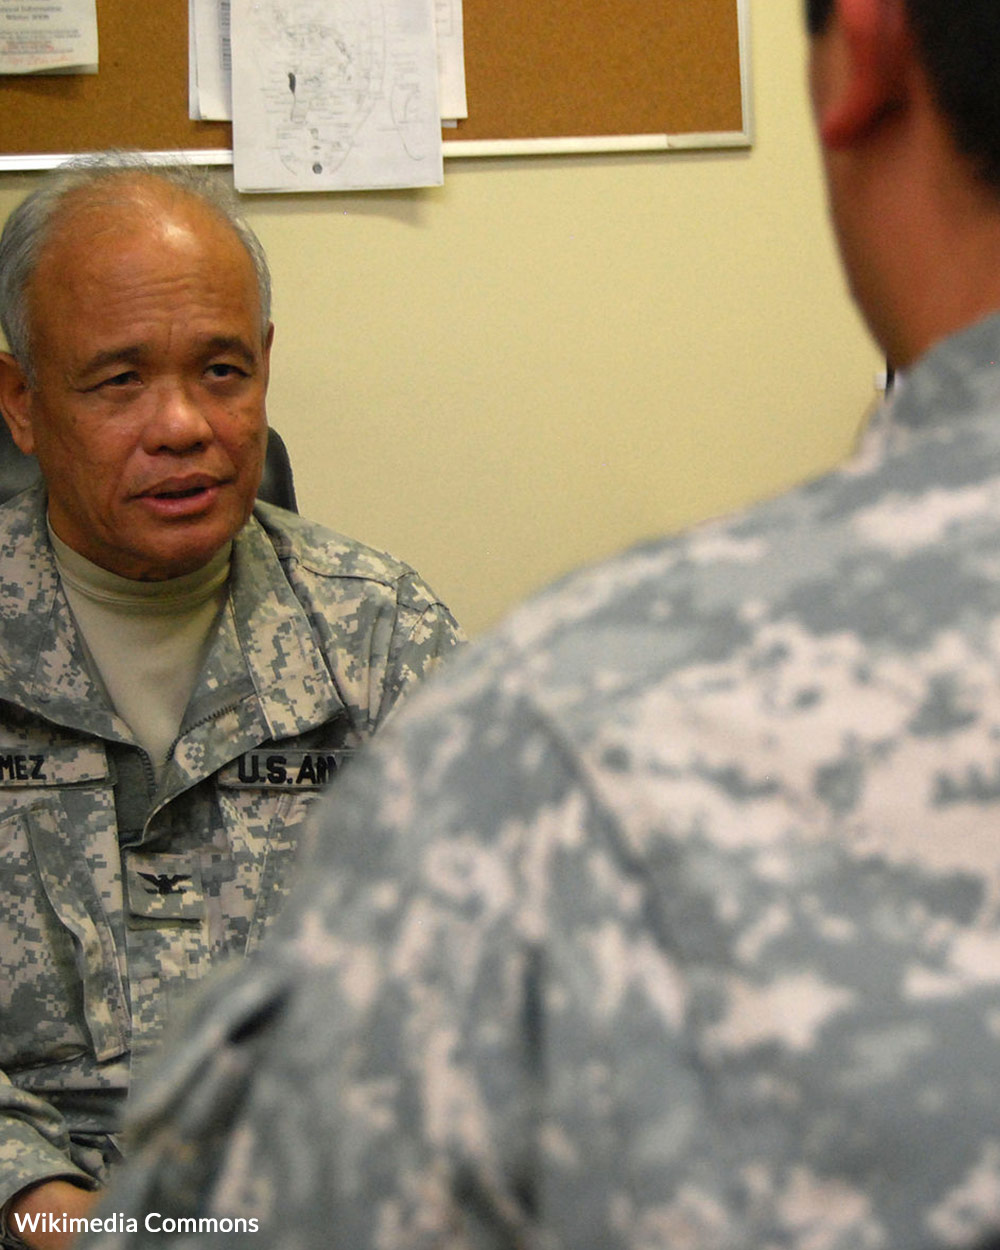 The VA and other organizations offer support for veterans with PTSD and other issues.